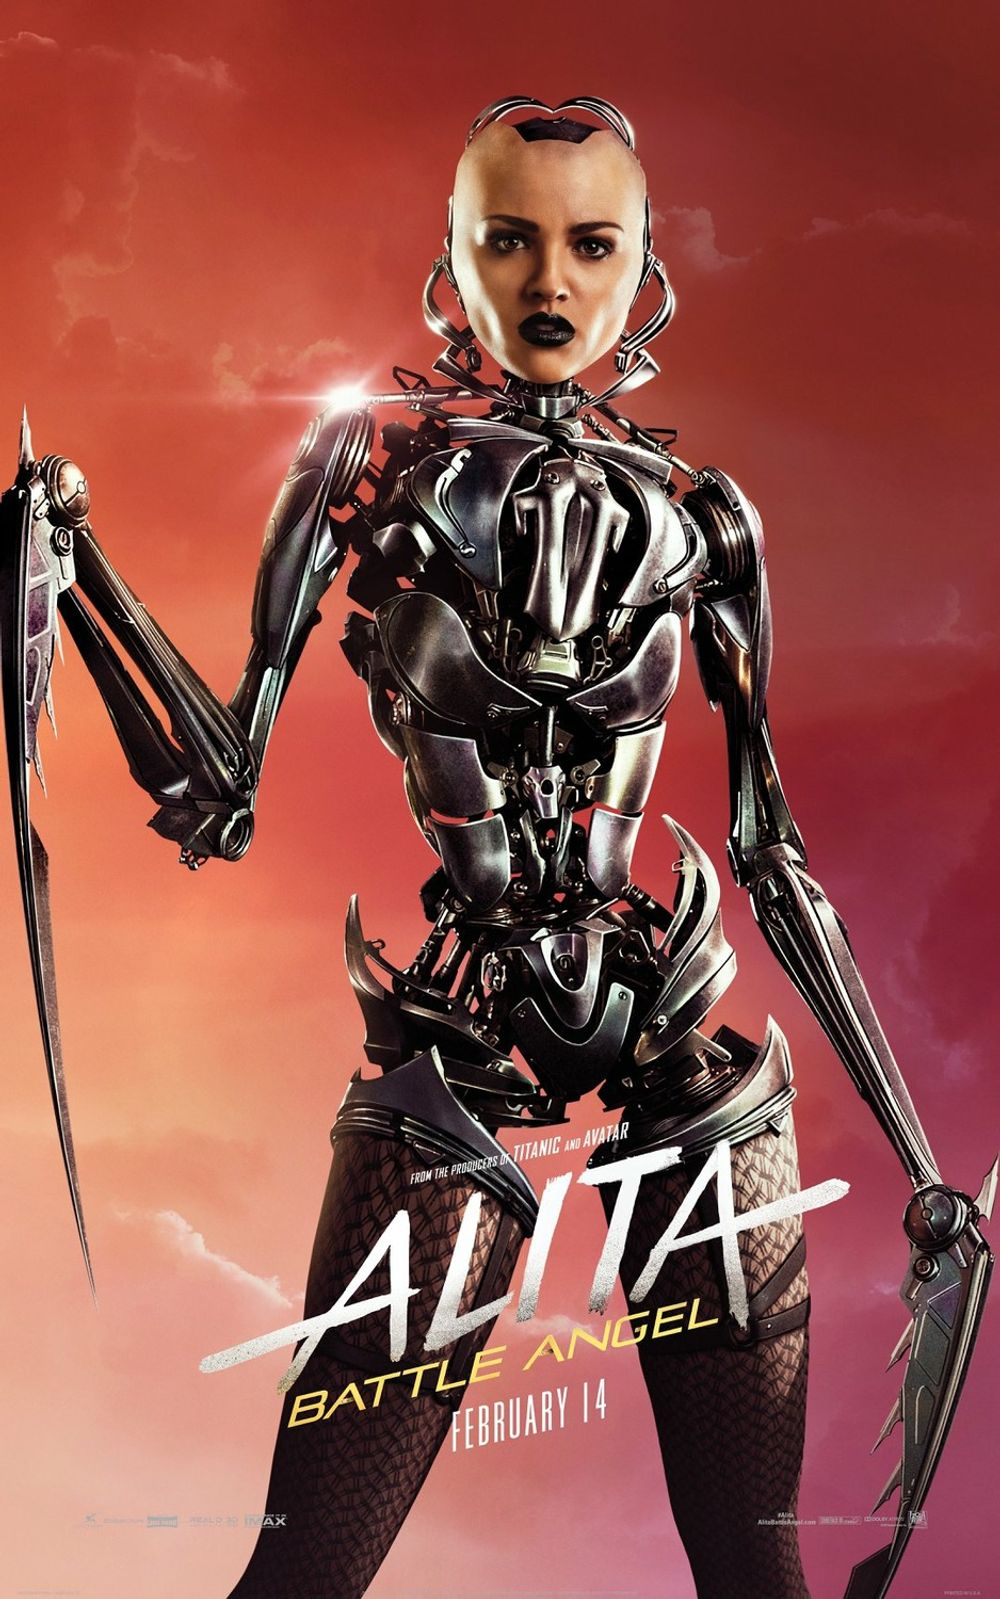 3-Alita: Battle Angel